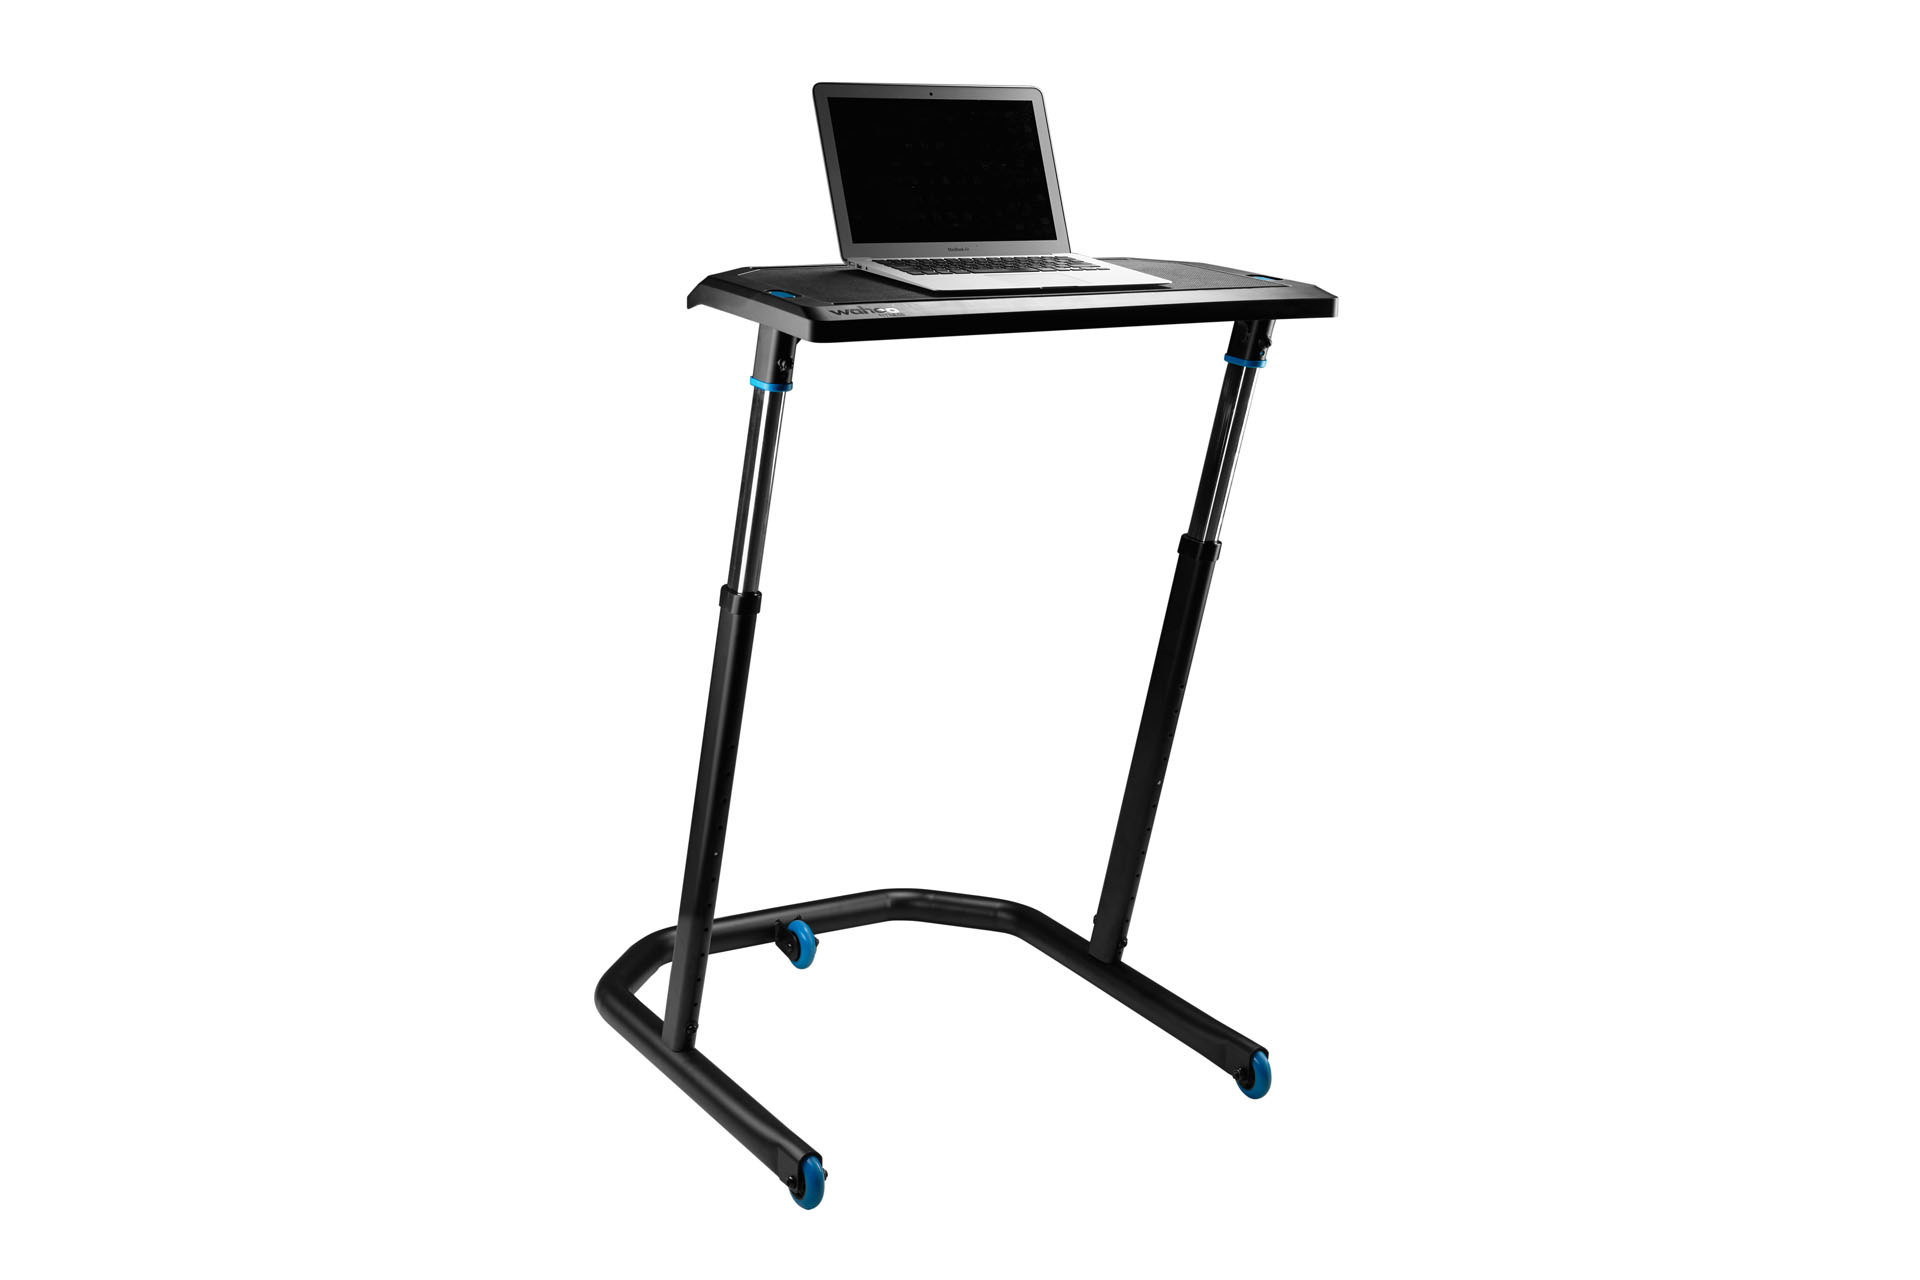 KICKR Indoor Cycling Desk-Picture-08